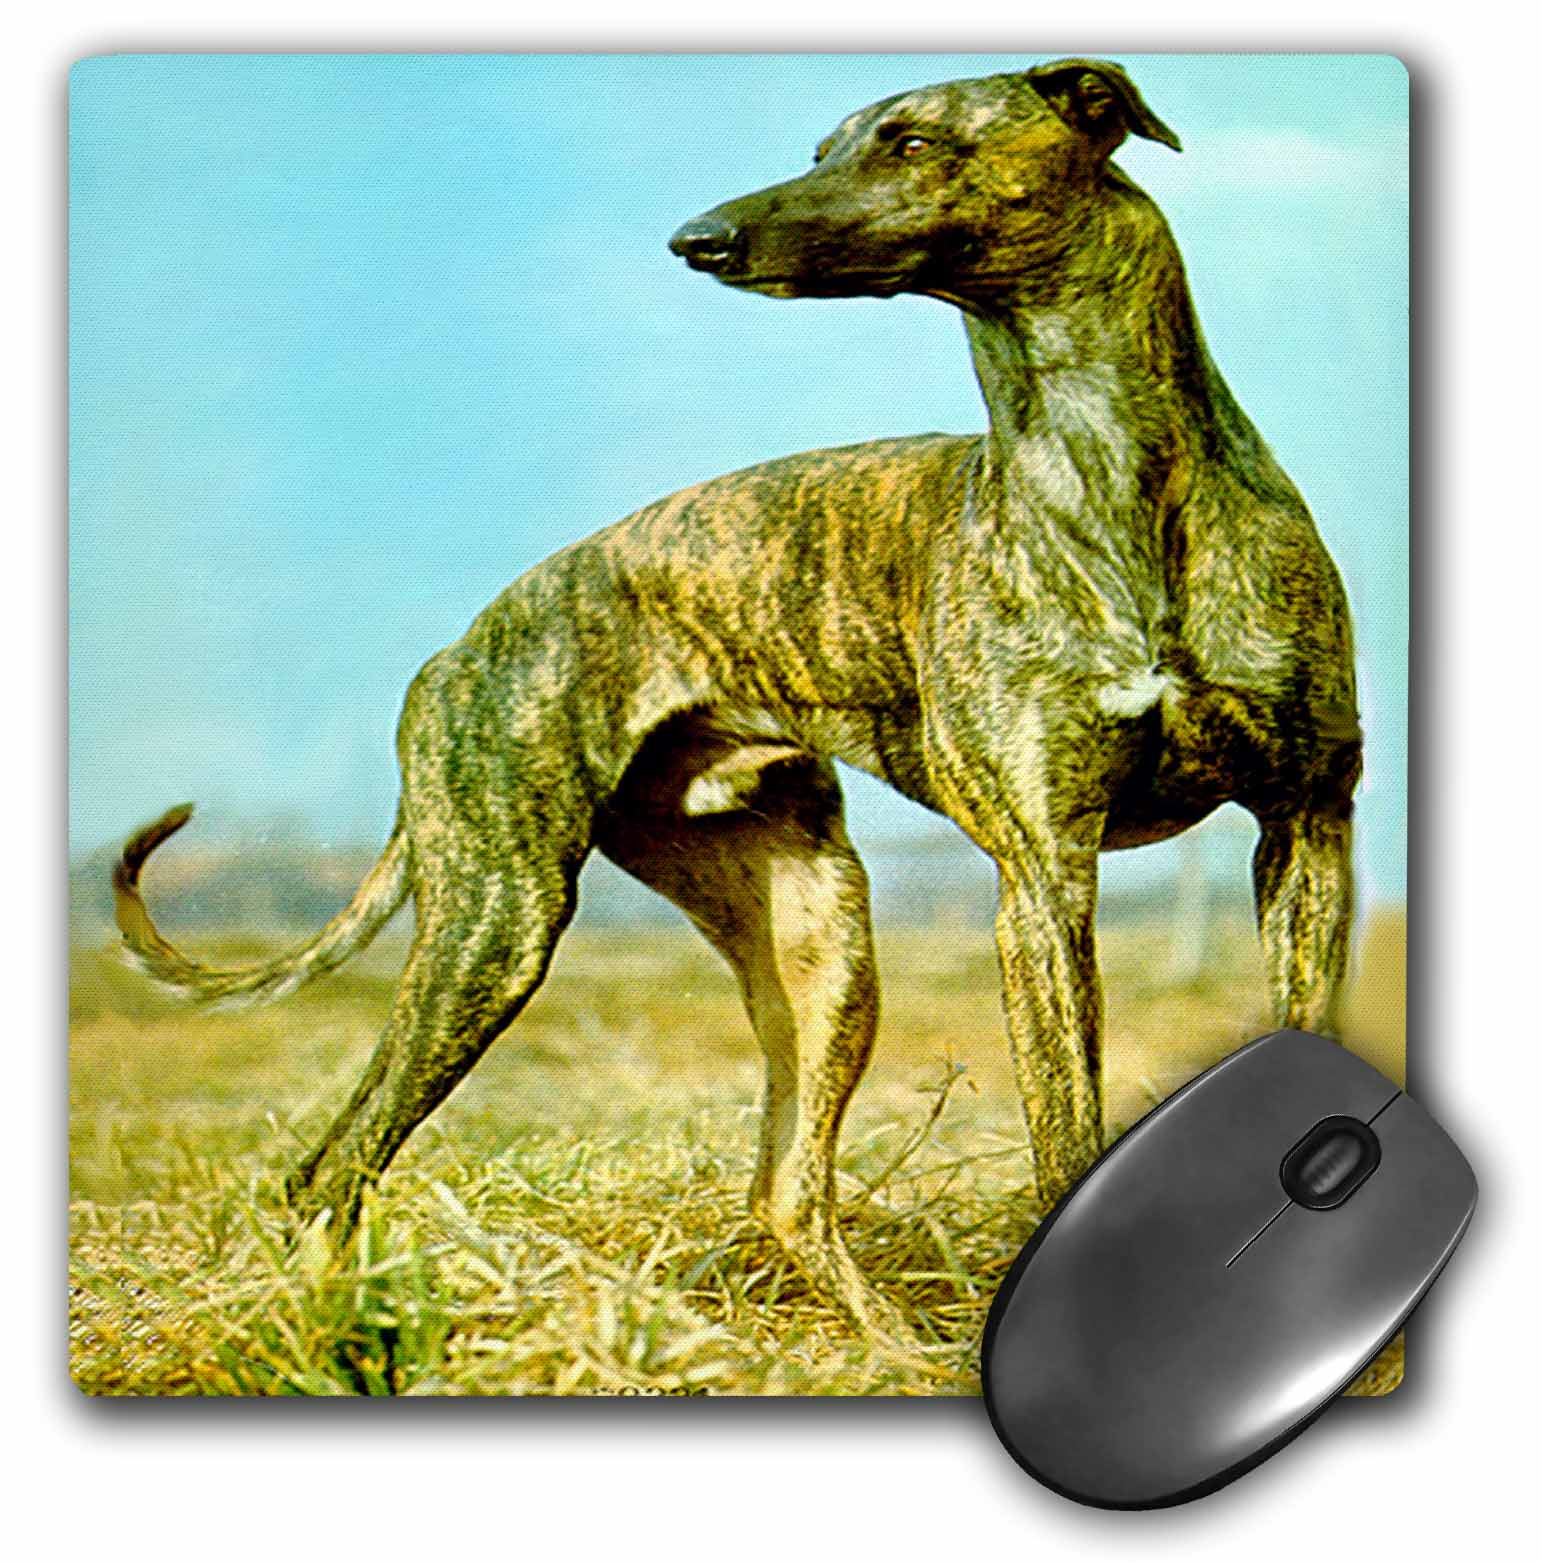 3dRose Brindle Greyhound, Mouse Pad, 8 by 8 inches